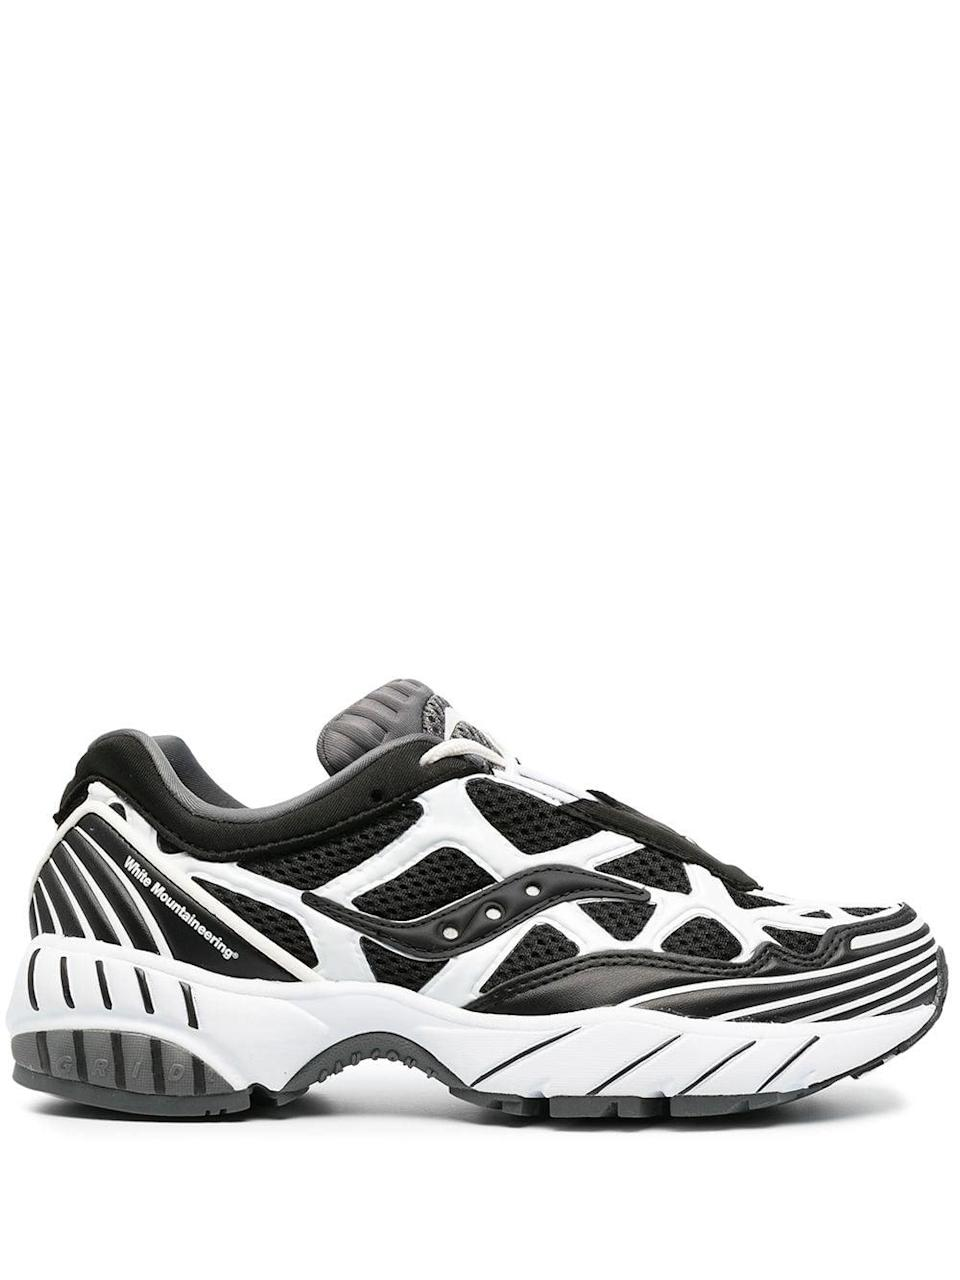 """<p>""""I run in Saucony sneakers, but I've recently discovered some of the more fashionable trainers with the<span>Saucony x White Mountaineering Low-Top Trainers</span> ($220). They feel sporty and unique, and honestly remind me of my middle school days when I wore the brand's classic Court shoes with my terry cloth Juicy trackpants."""" - Sarah Wasilak, editor, Fashion</p>"""